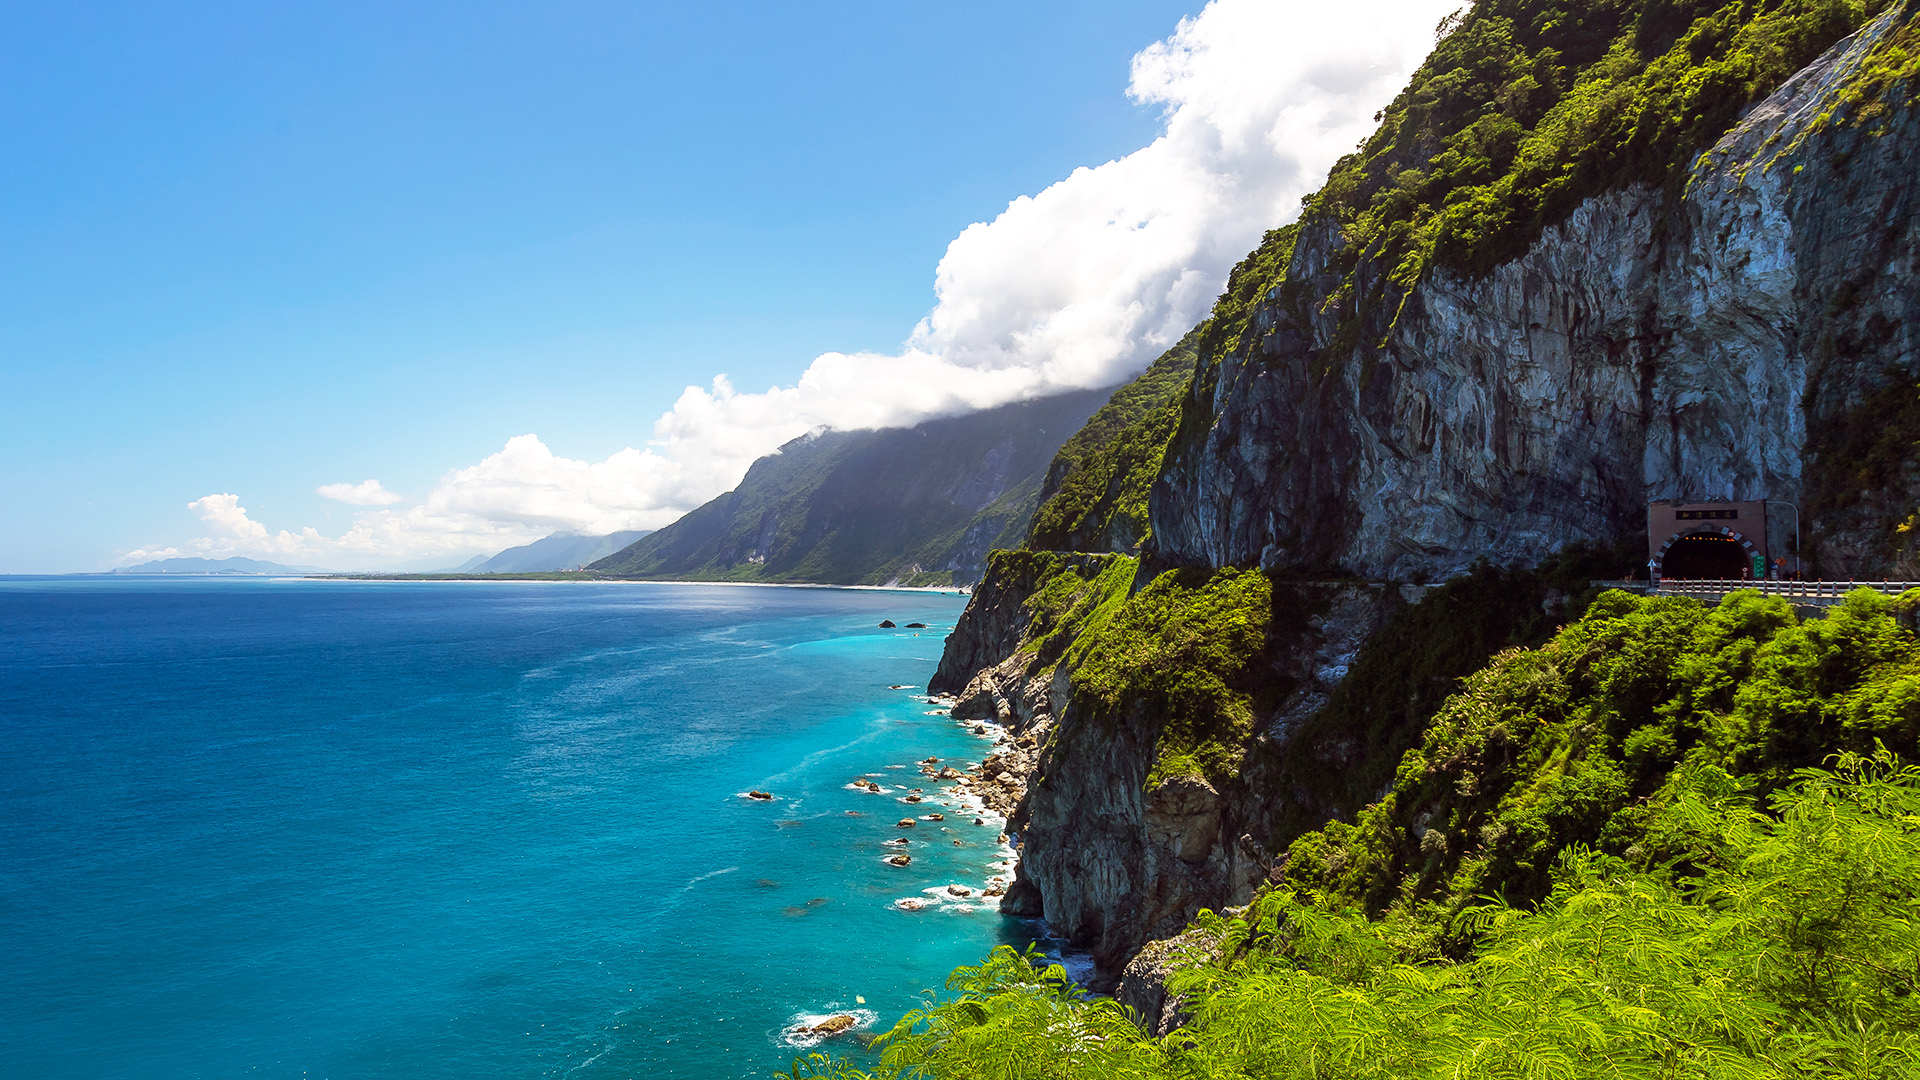 Hualien Day Tour: Taroko Gorge, Qixingtan, and Qingshui Cliffs